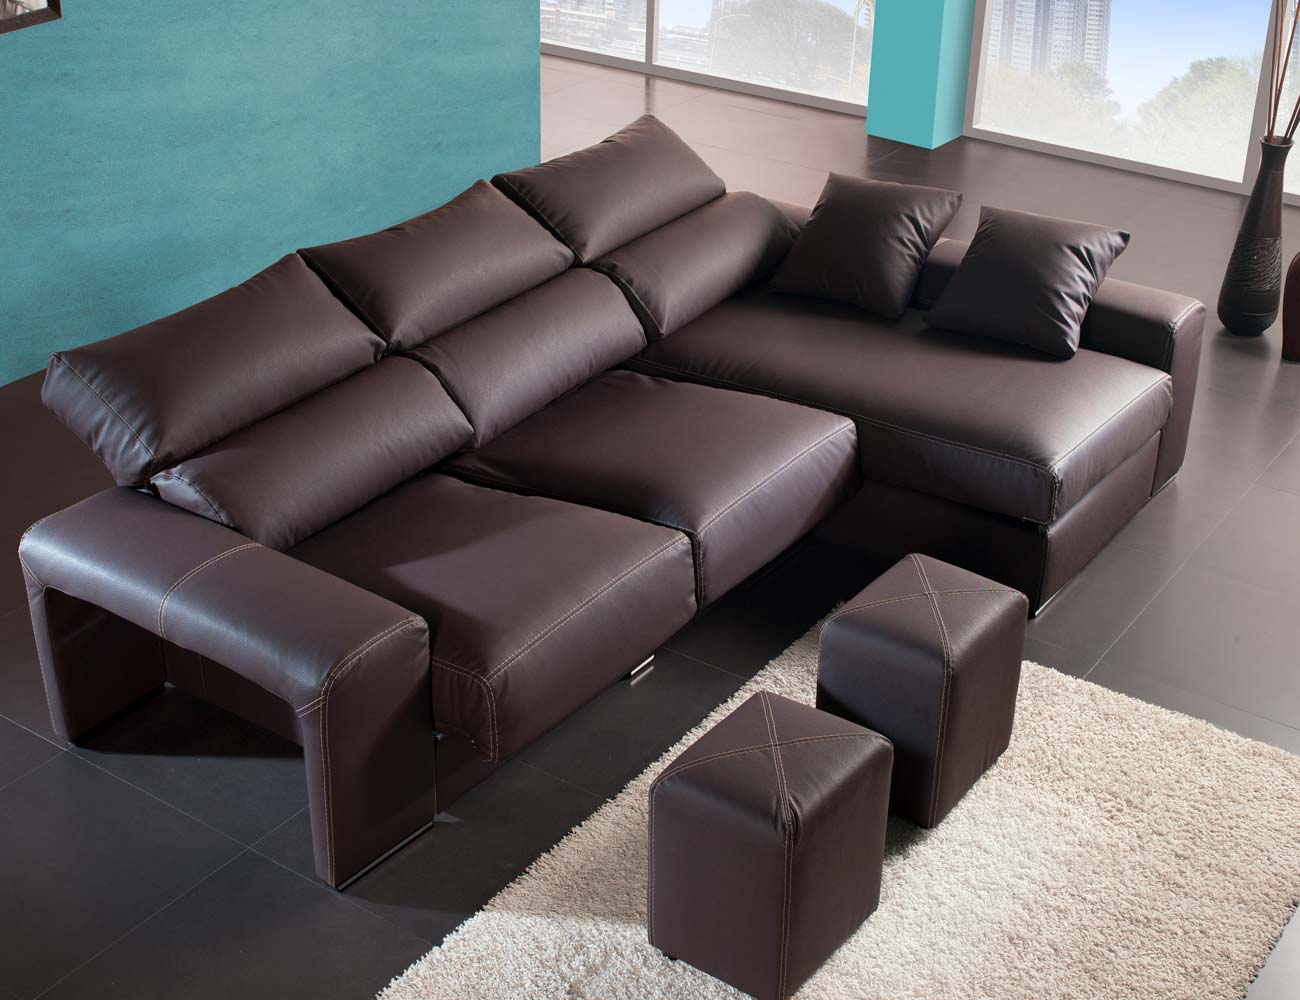 Sofa chaiselongue moderno polipiel chocolate poufs taburetes26